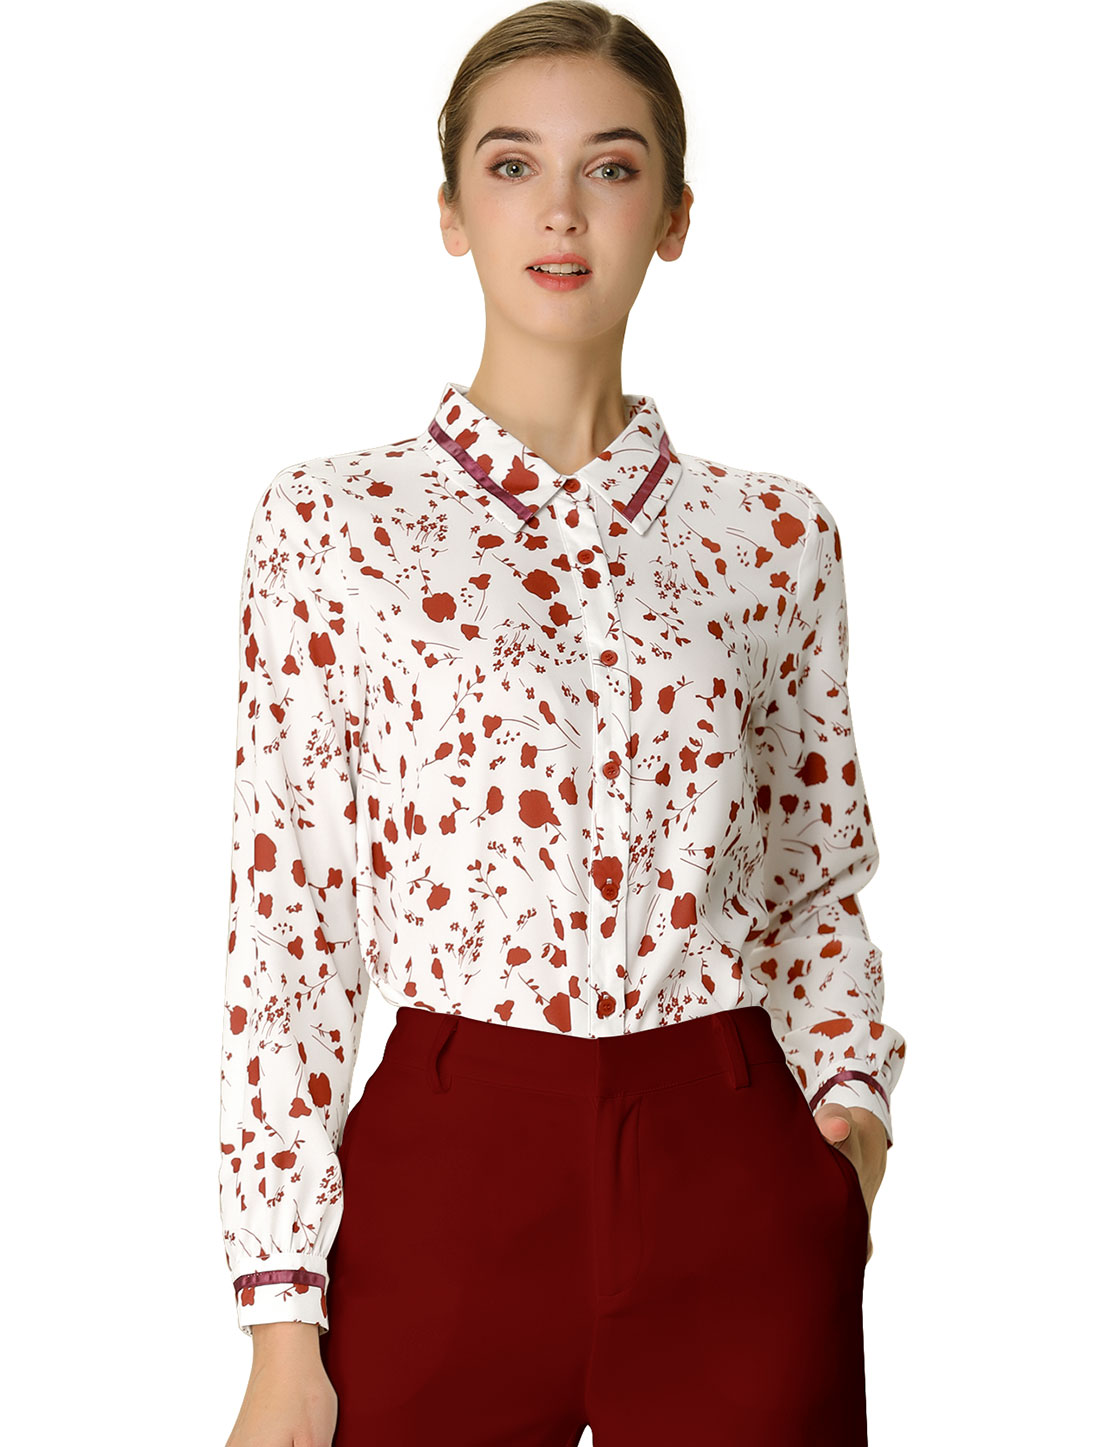 Allegra K Women's Long Sleeve Shirt Casual Button Up Floral Print Tops White L